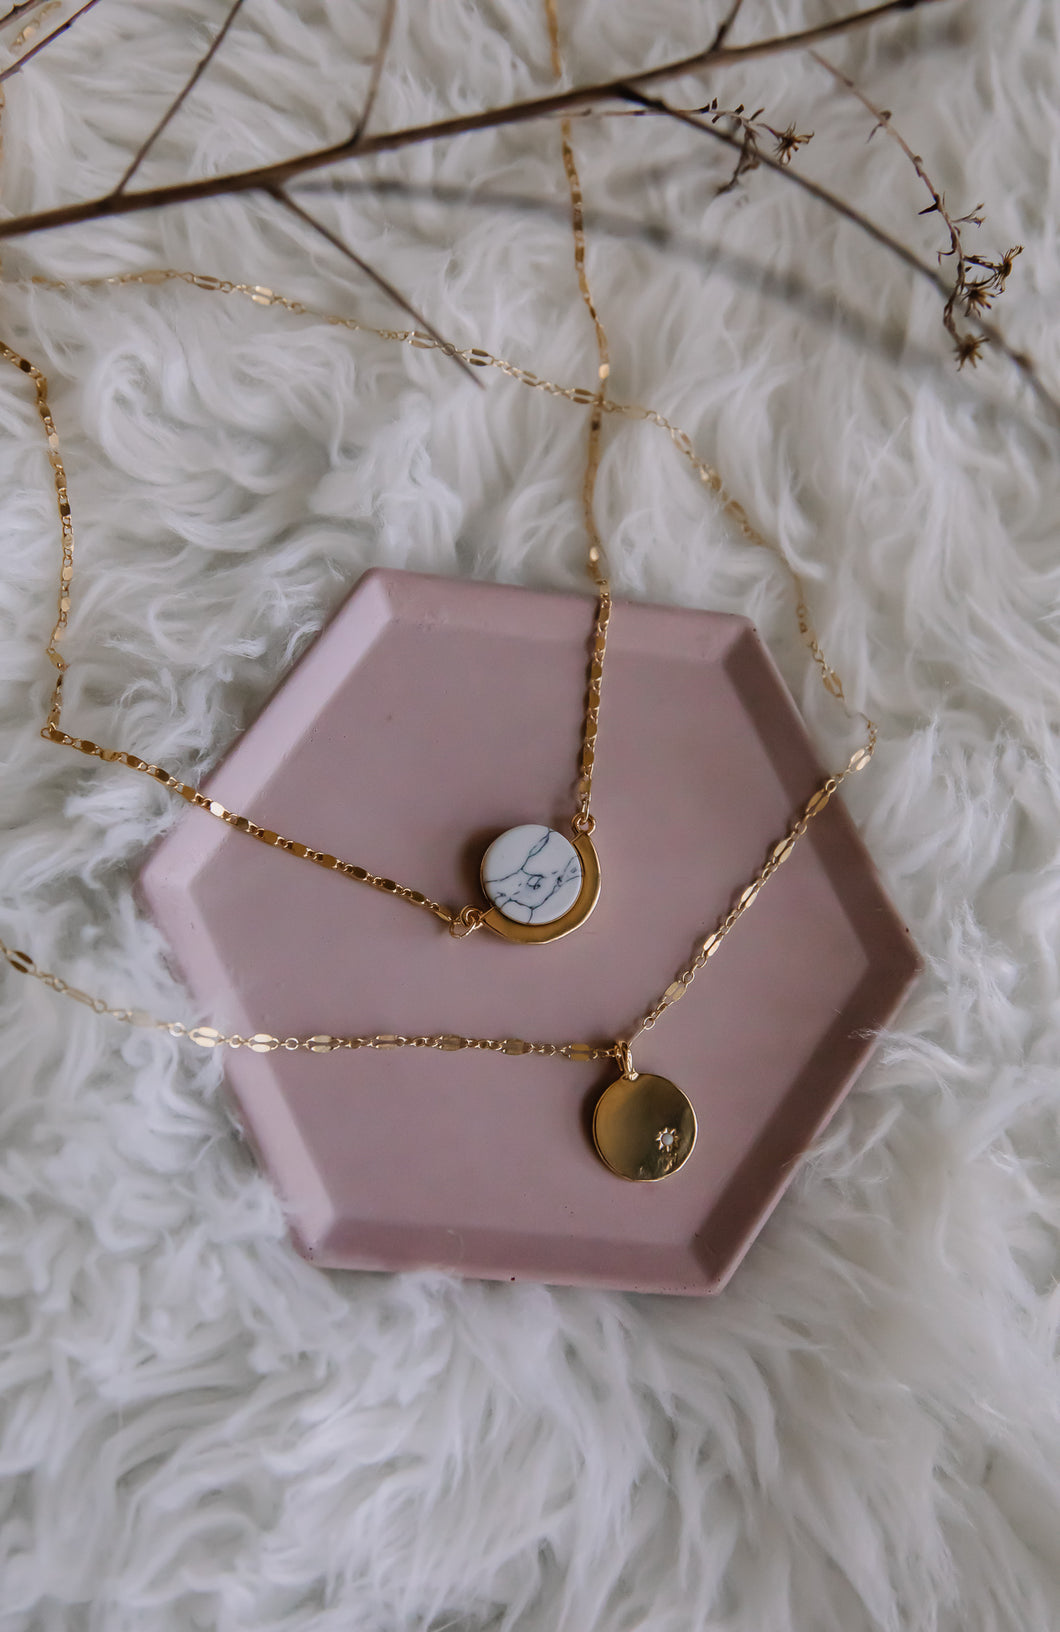 The Emilia necklace //